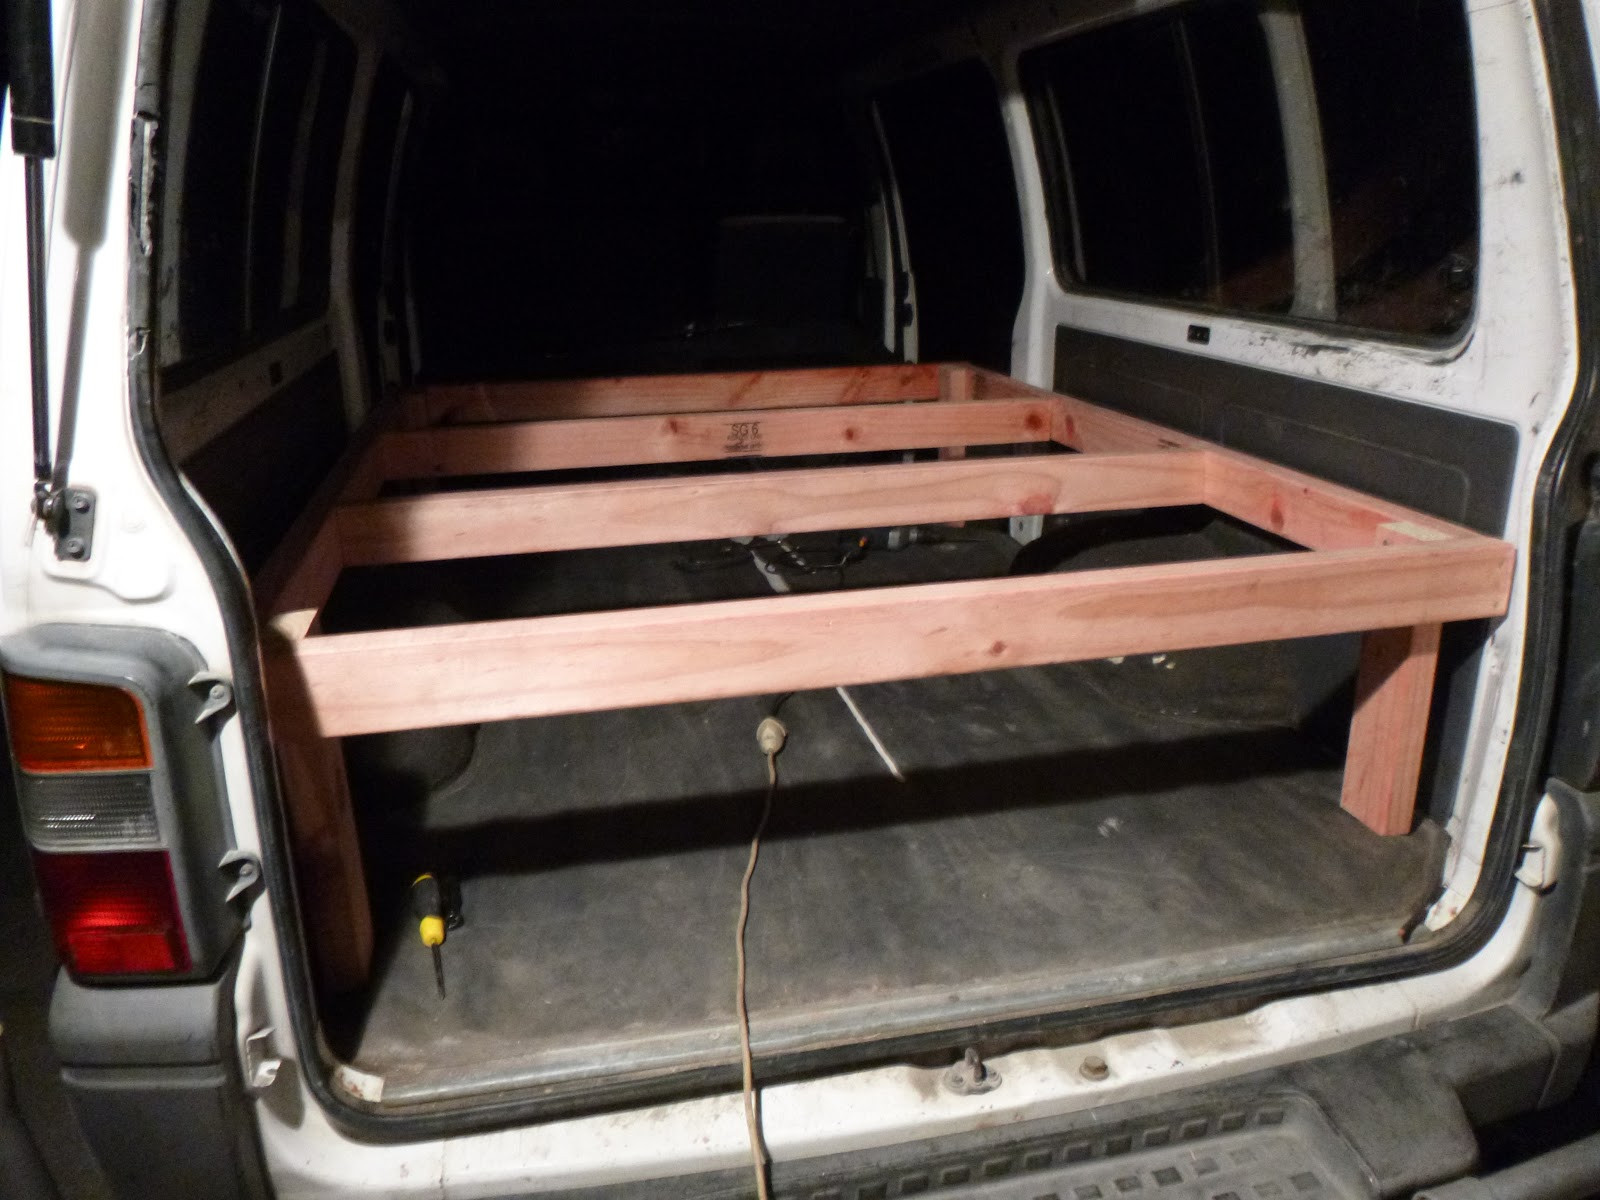 Best ideas about Campervan Beds DIY . Save or Pin Shrieking Peanut DIY Campervan bed setup Now.